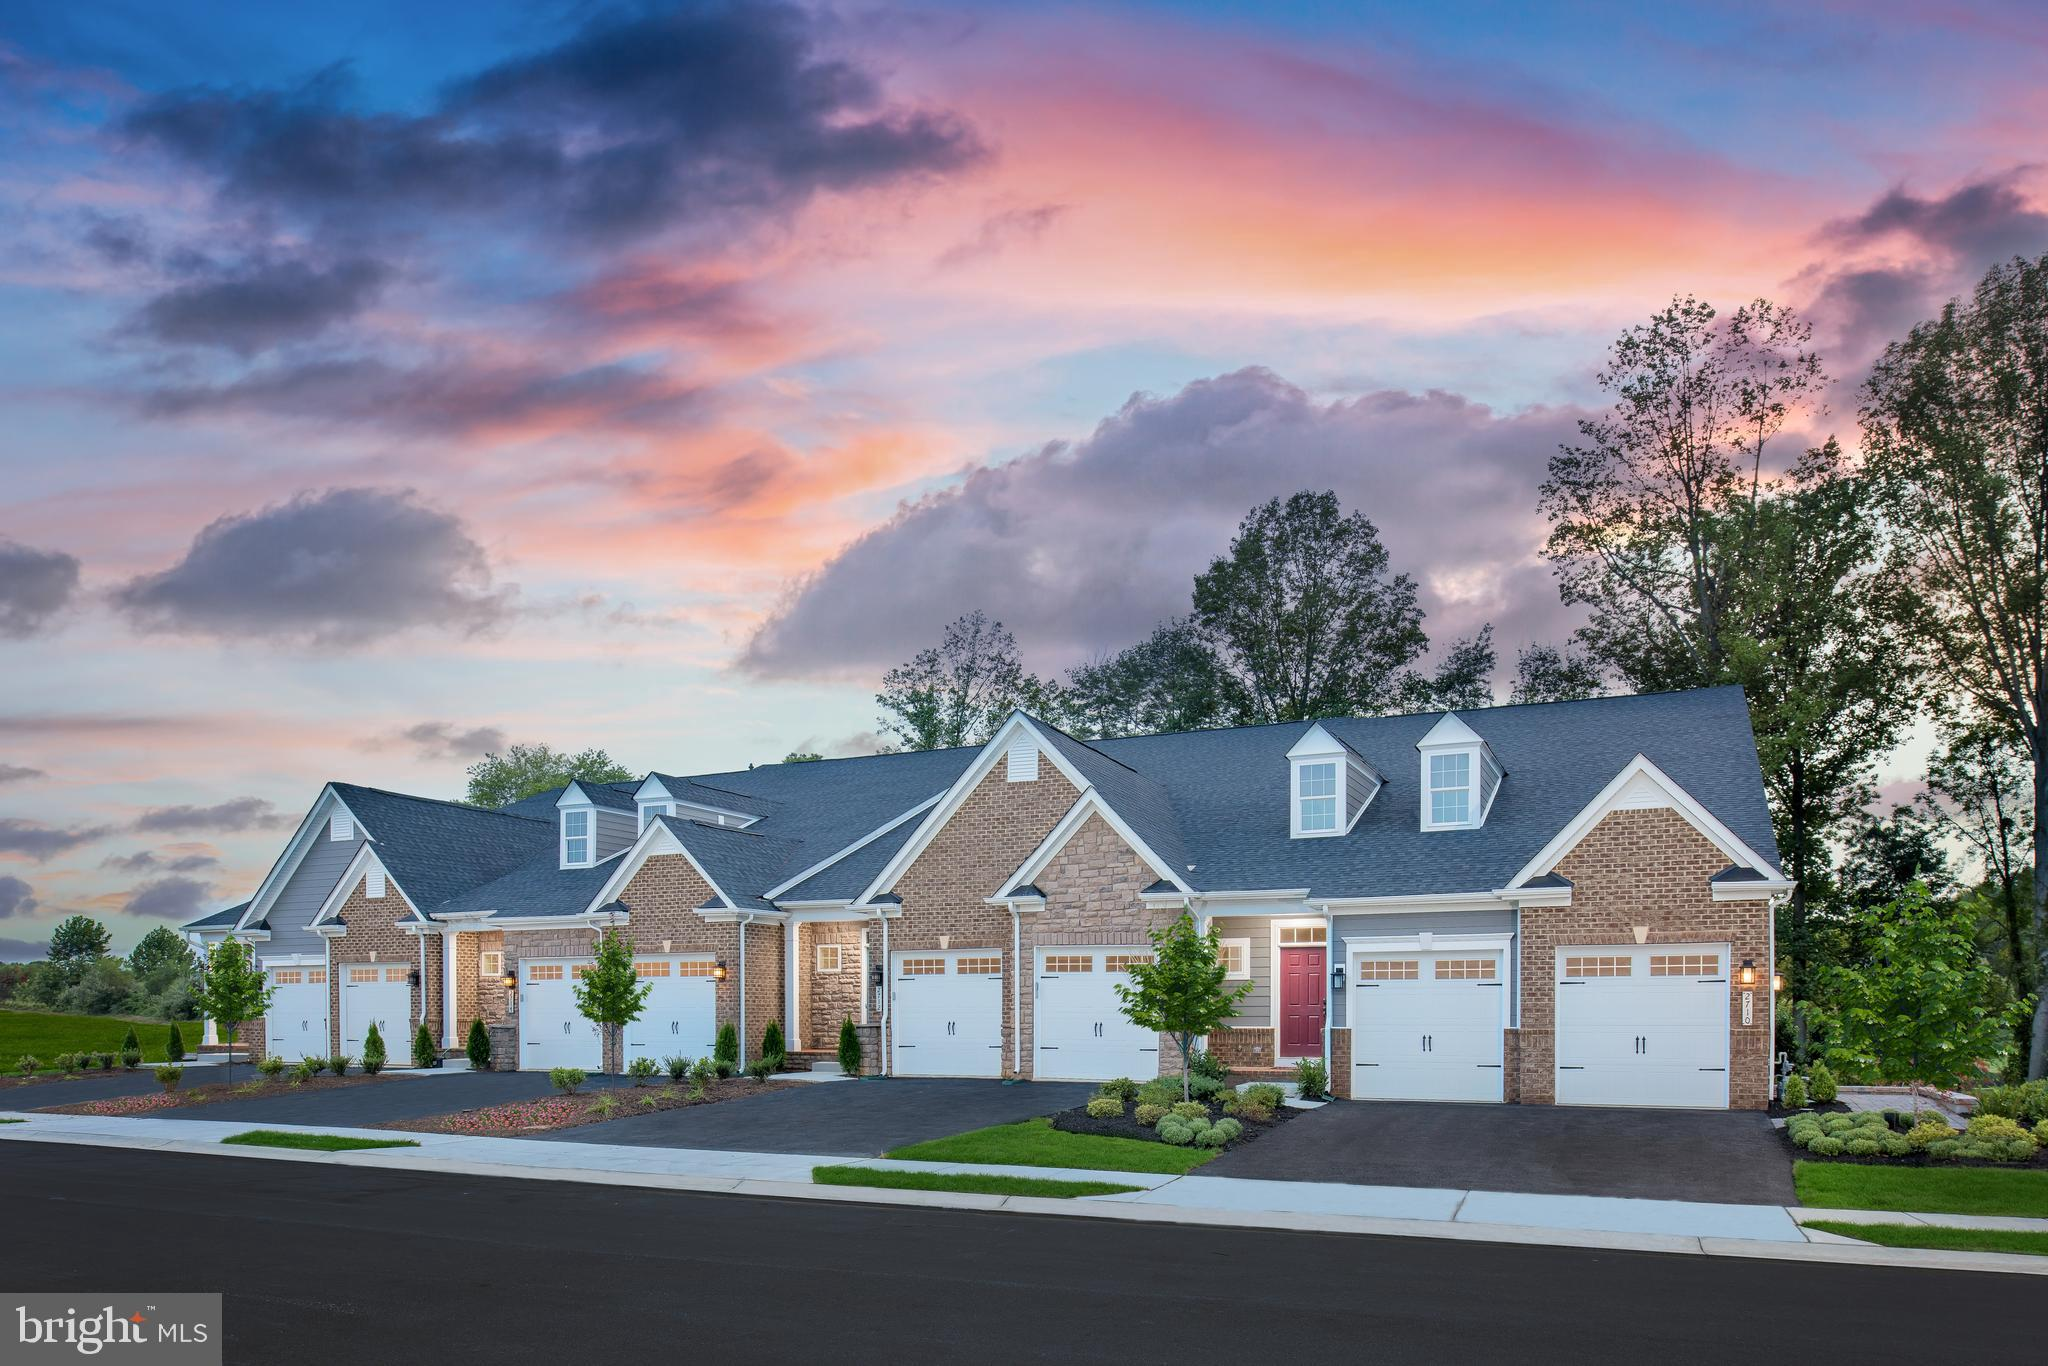 NEW TURF VALLEY SECTION JUST RELEASED! NV Homes Park View at Turf Valley features a first floor owne